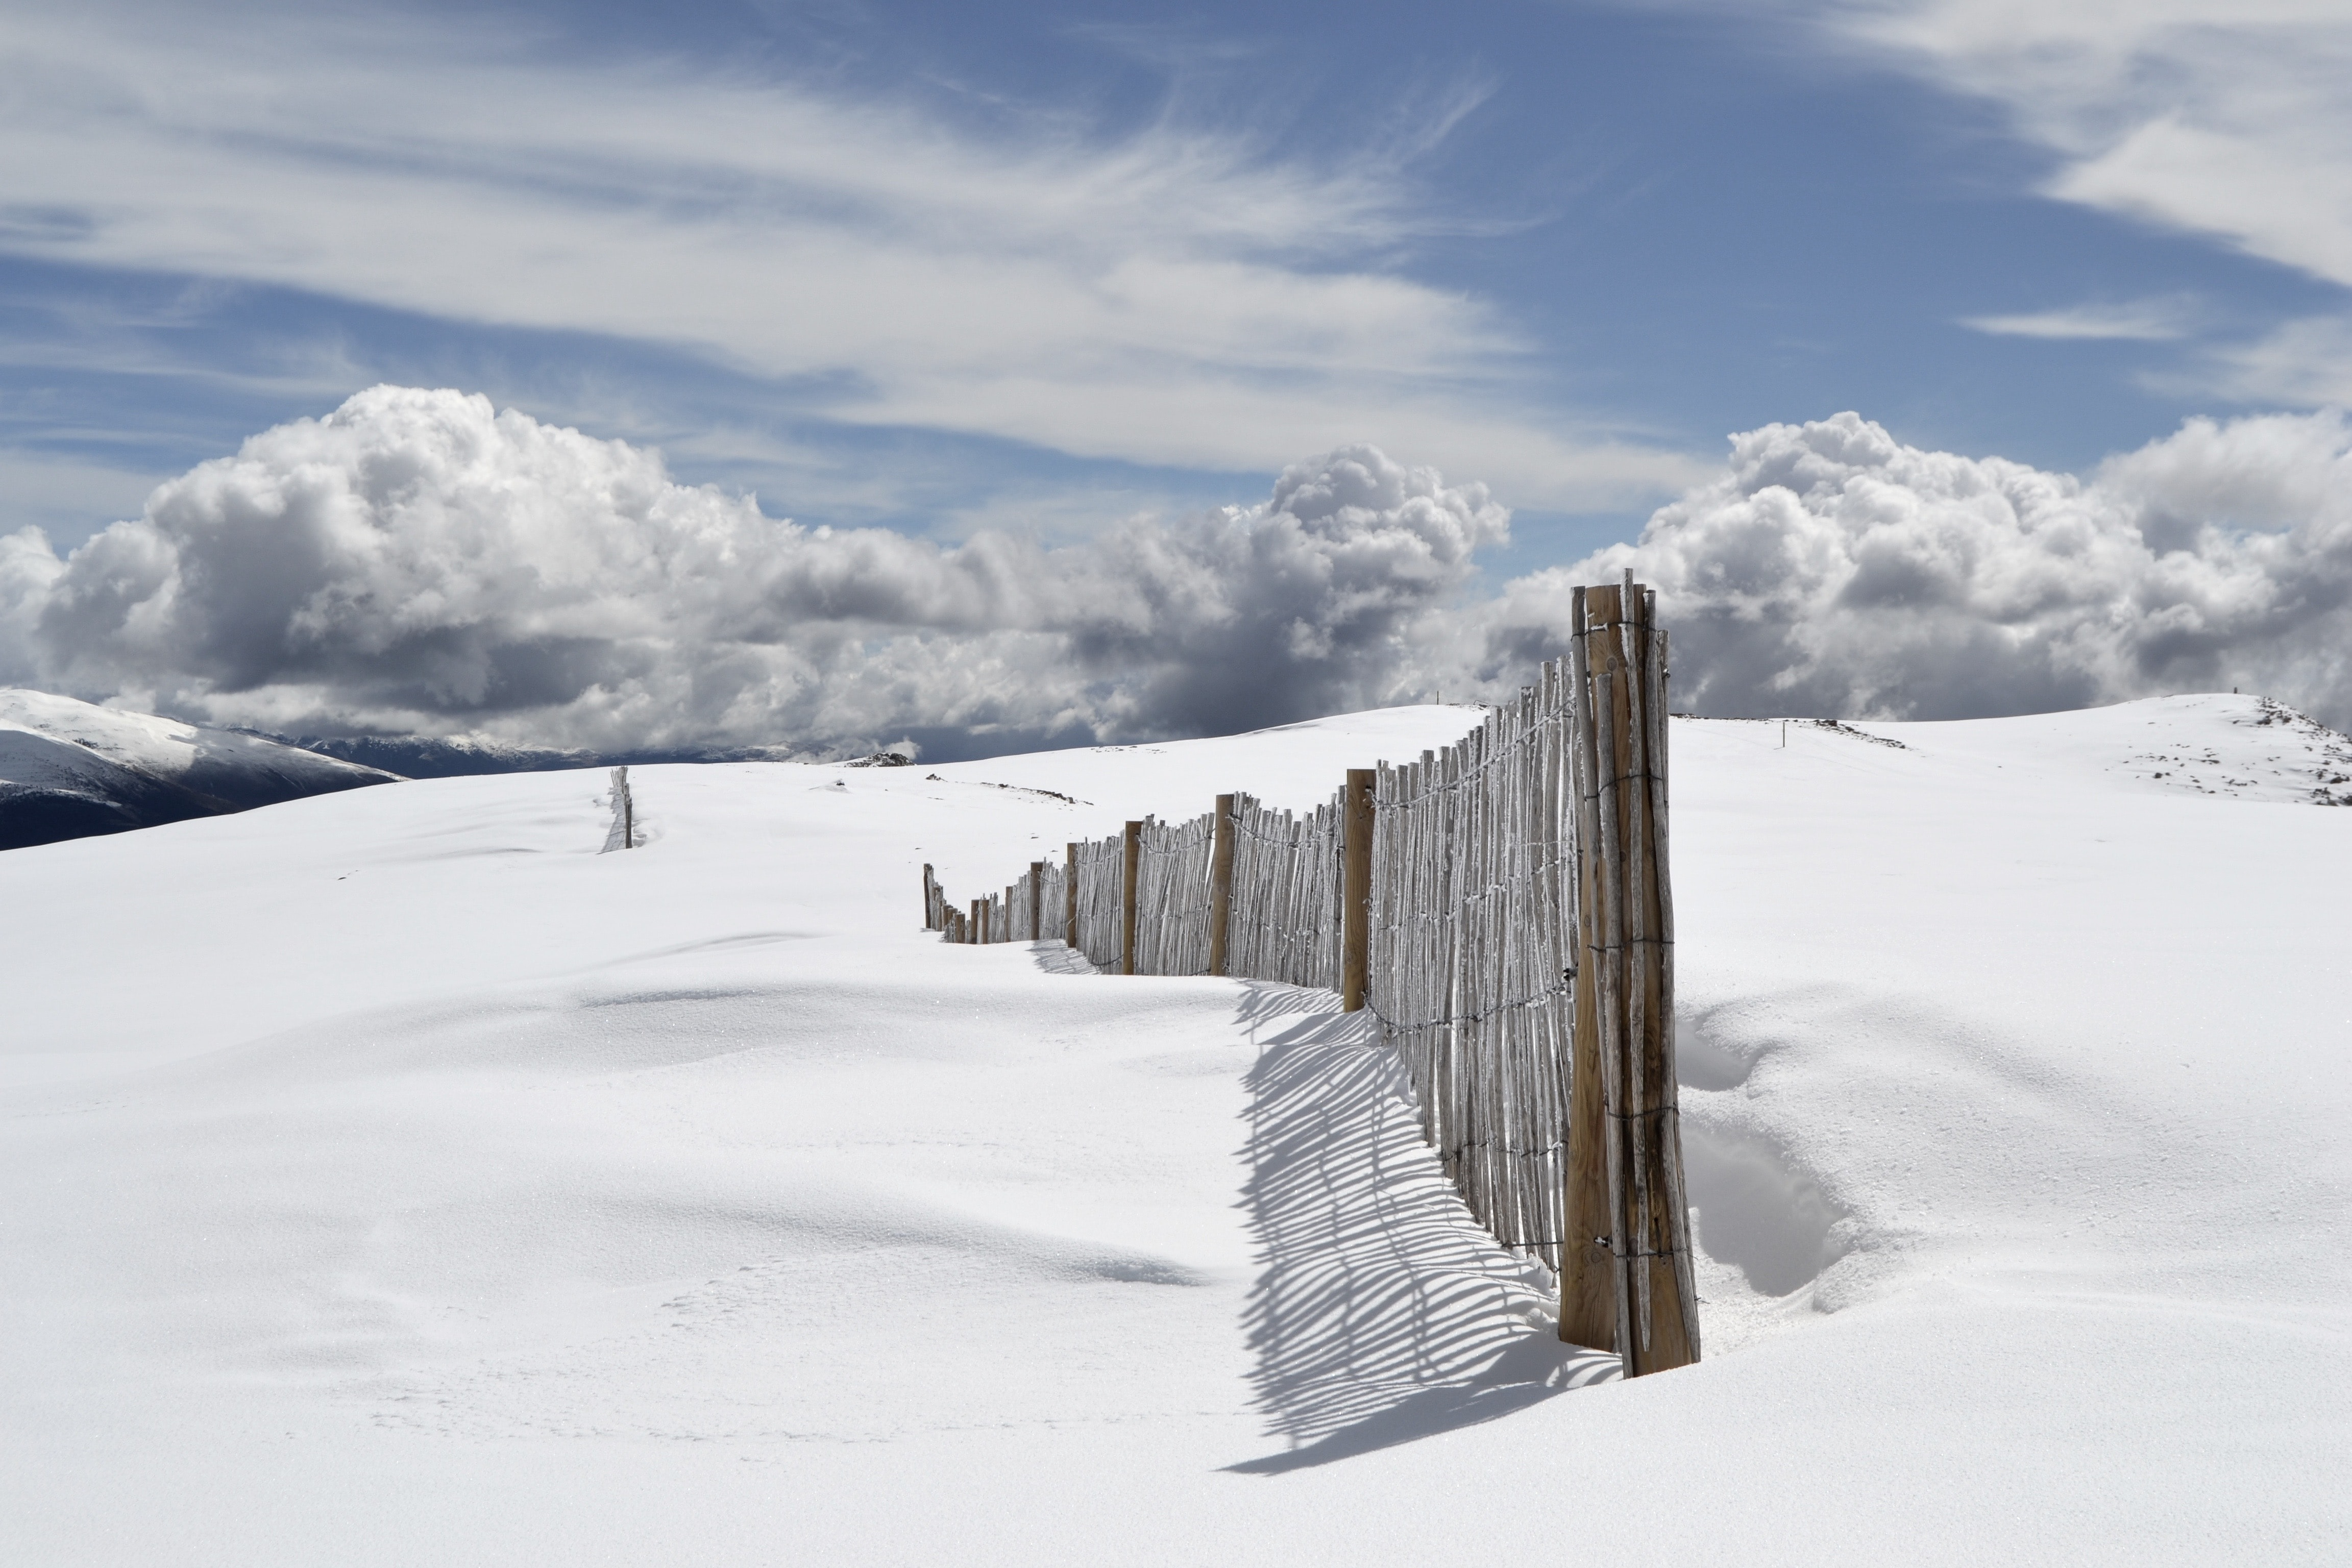 brown wooden fence on snow field under gray clouds